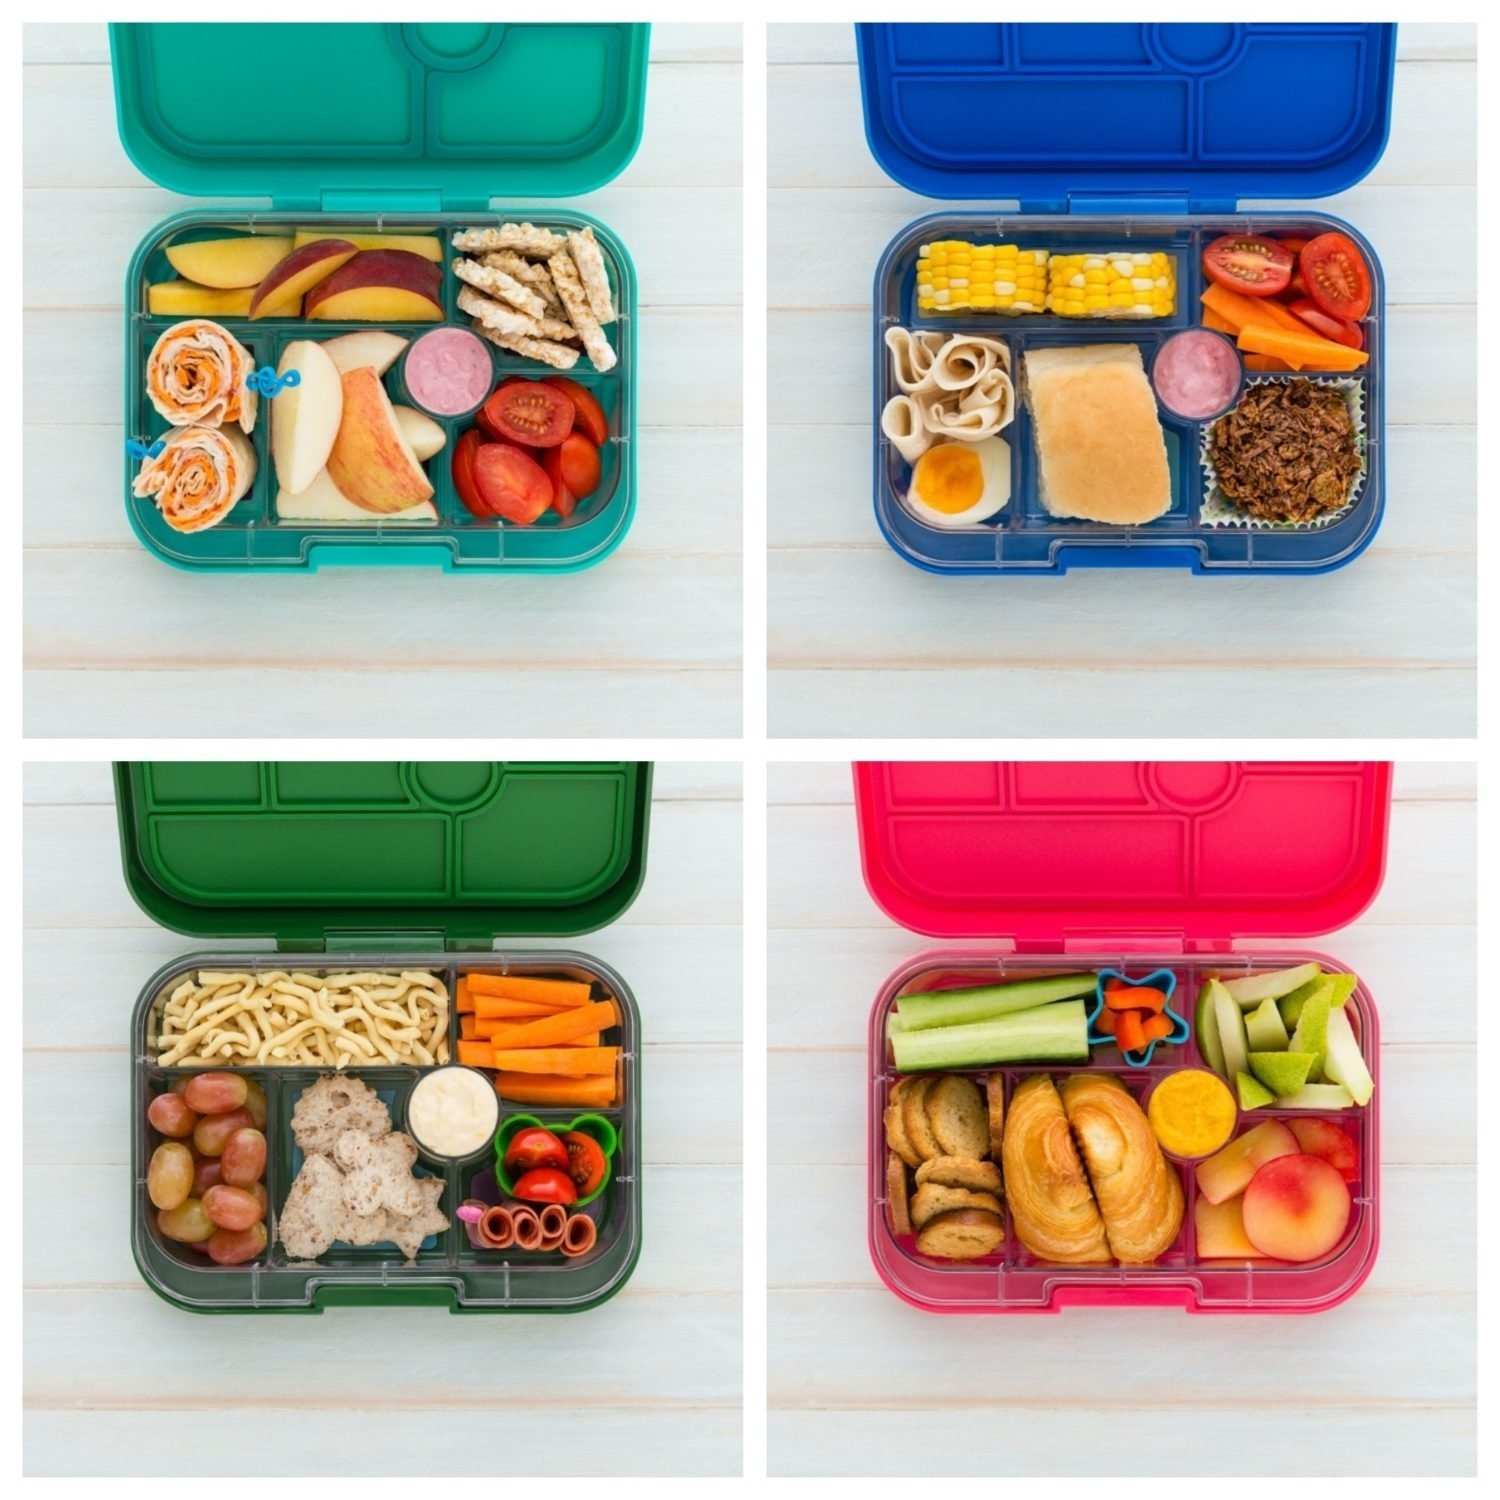 10 Cute Lunch Box Ideas For Kids kids lunchbox ideas nadia lim 2020